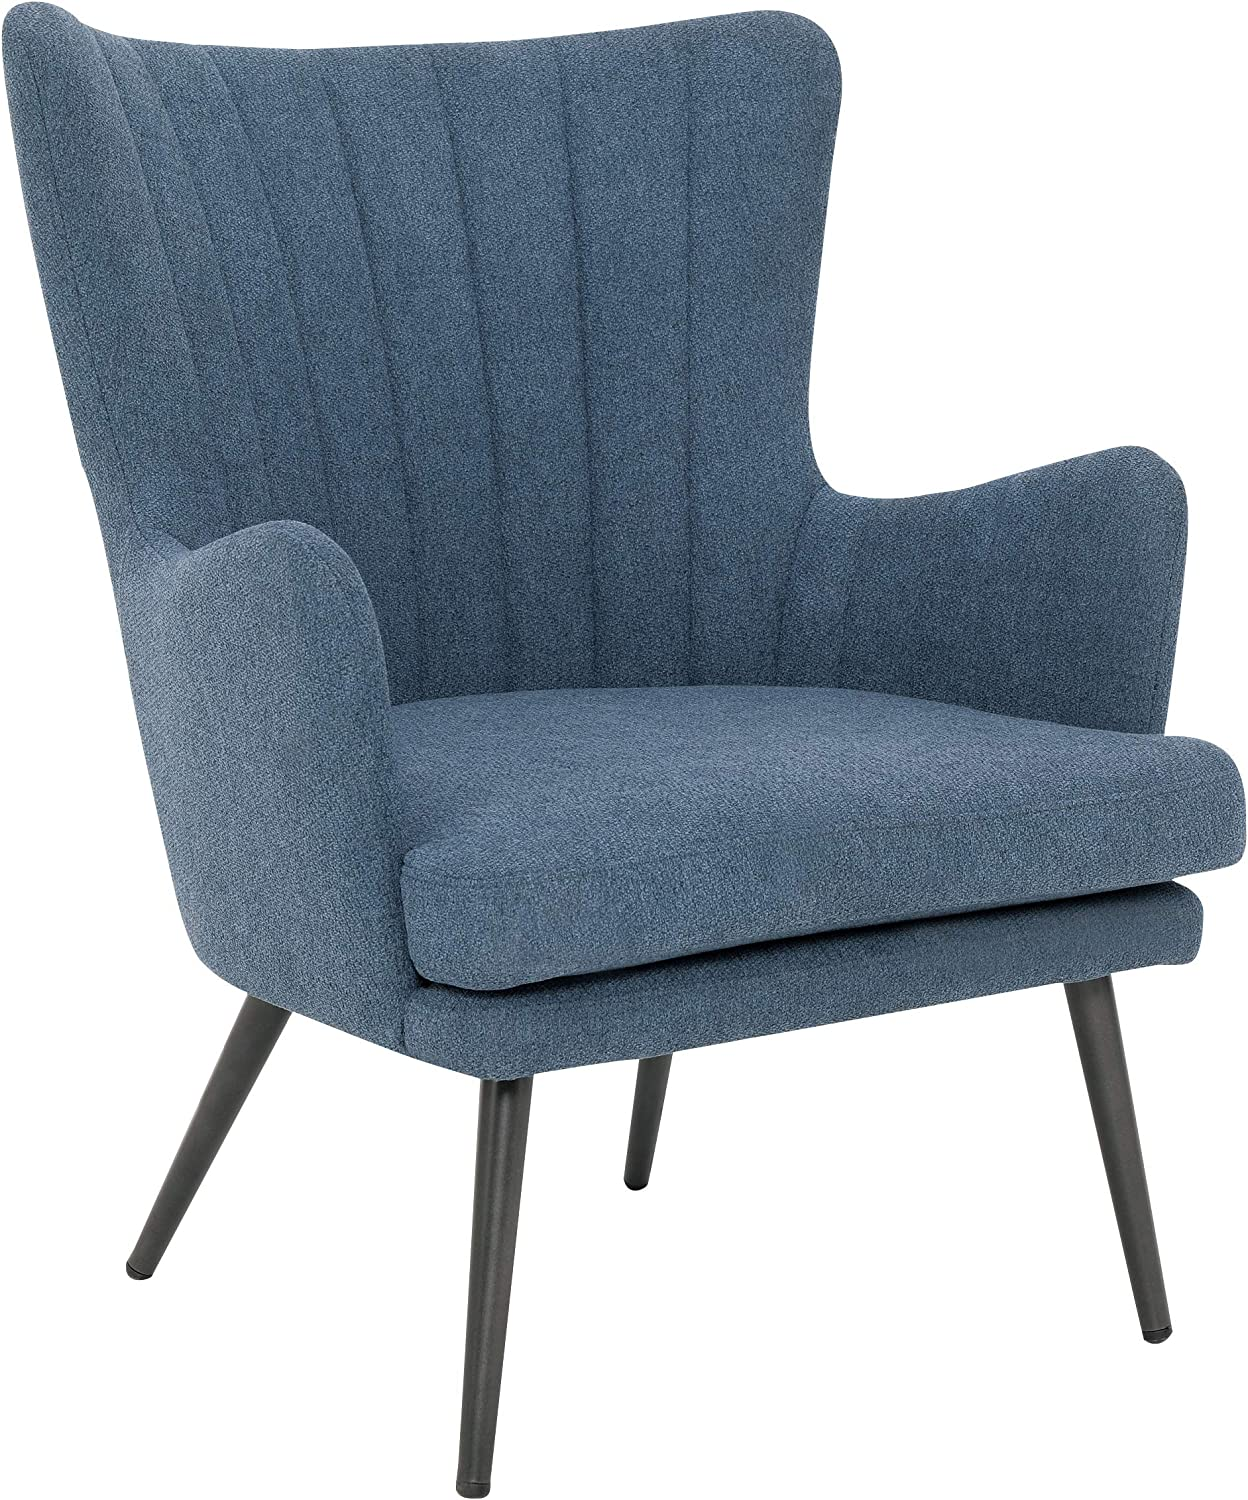 OSP Home Furnishings Jenson Mid-Century Modern Accent Arm Chair, Blue Fabric